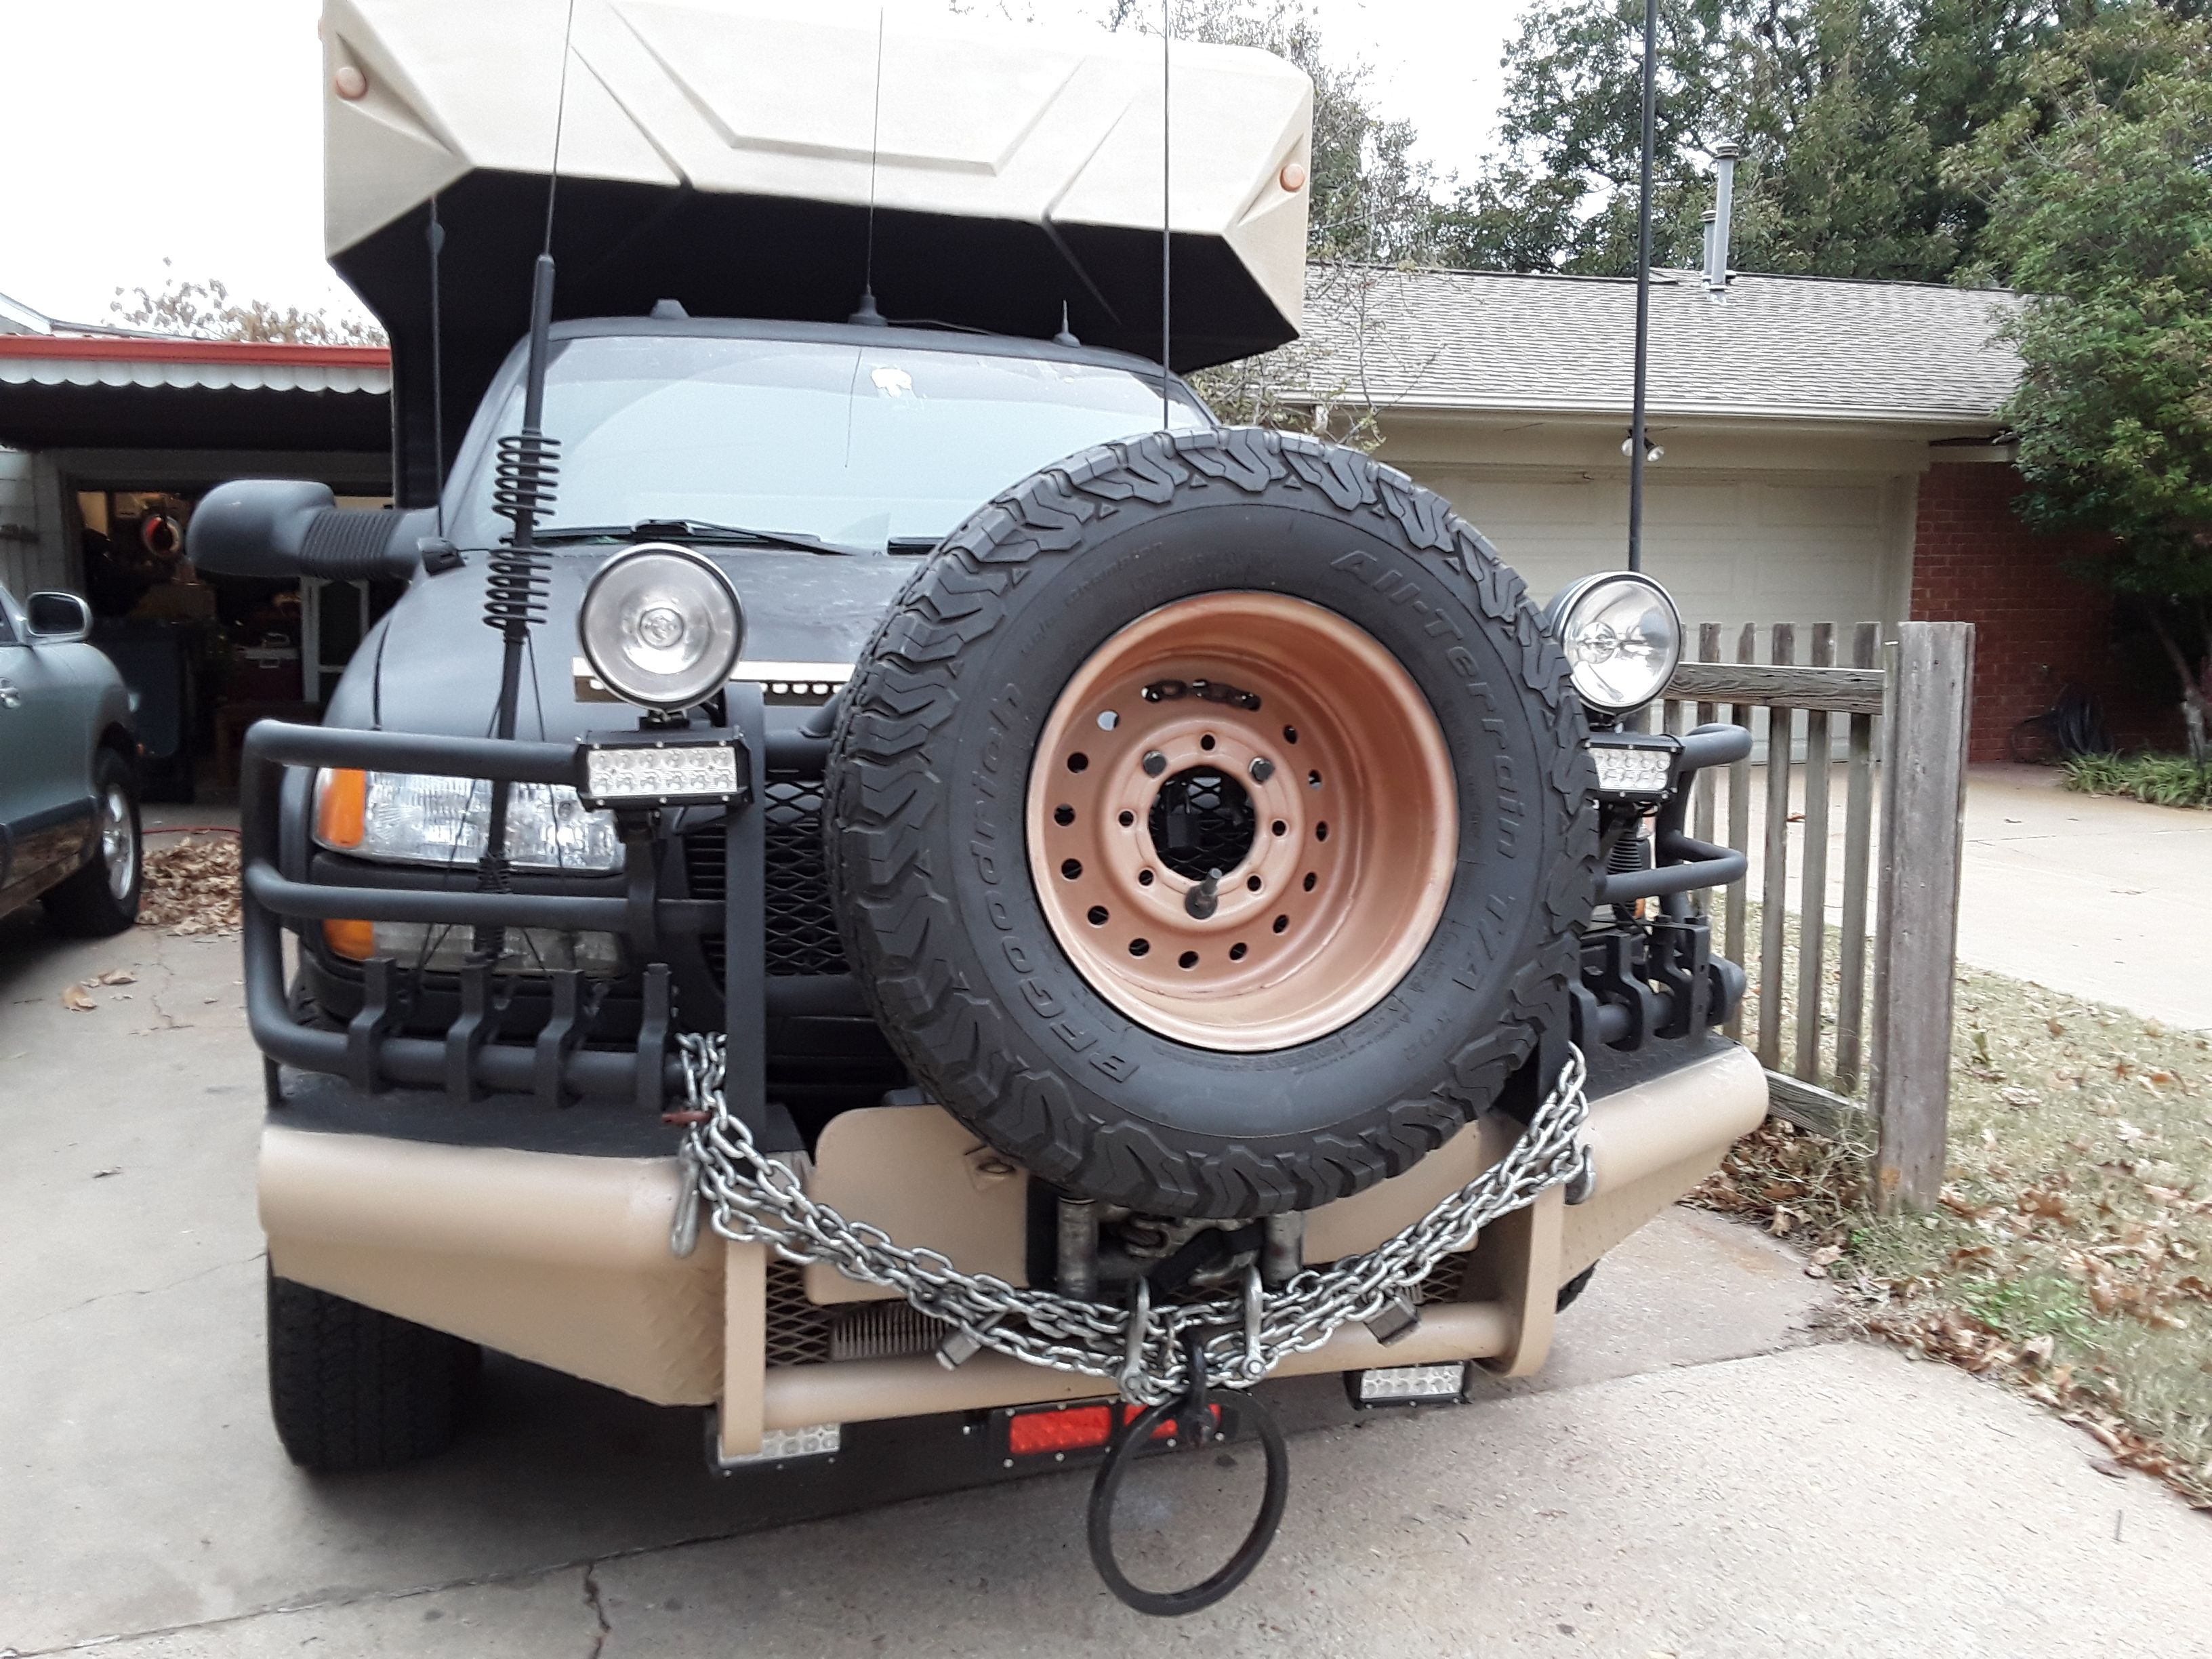 DIY Expedition/Bug out truck inspired by EarthRomer